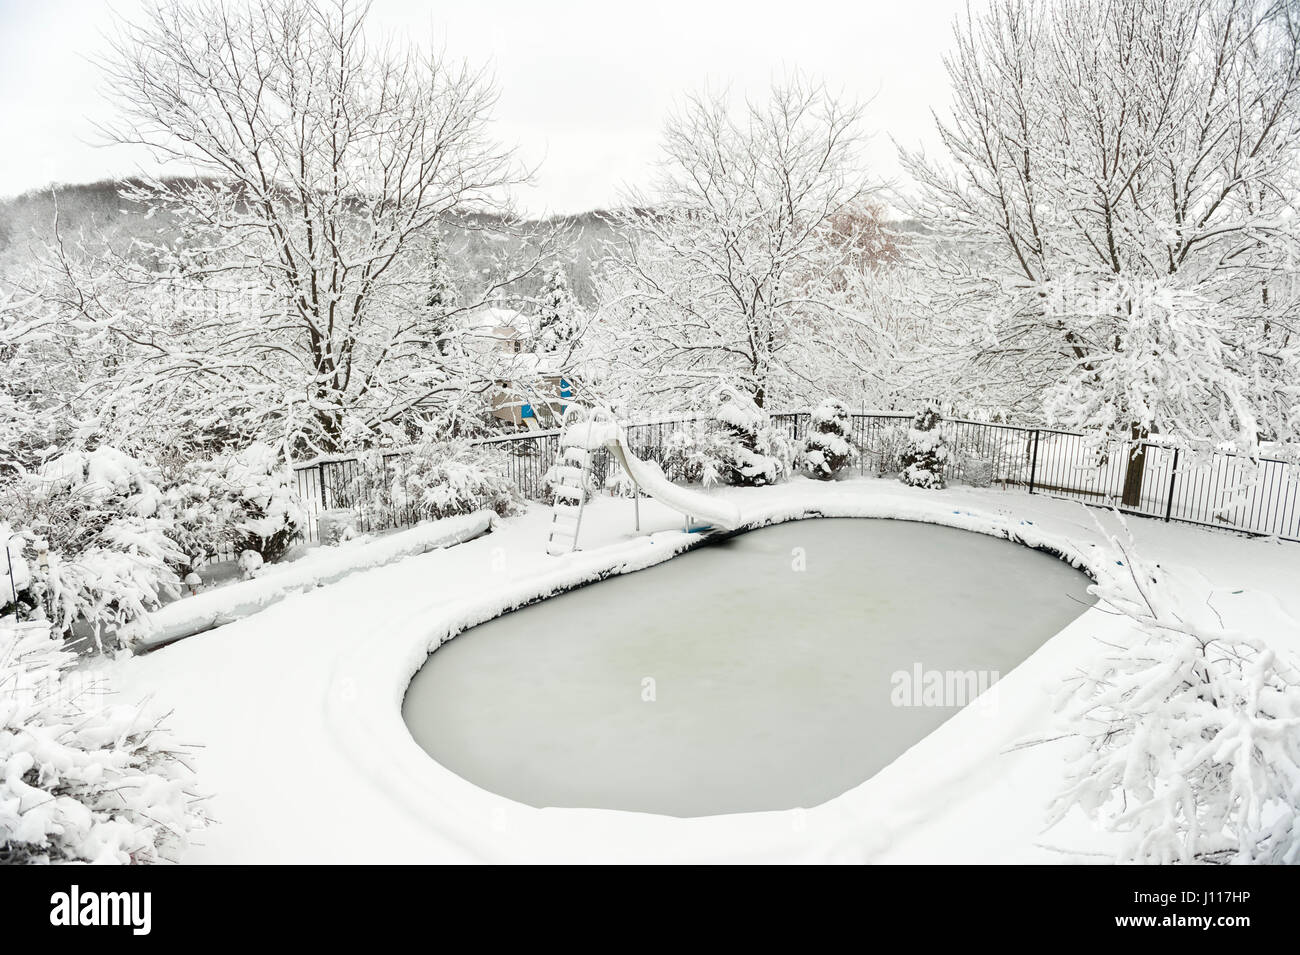 backyard swimming pool in winter after heavy snow fall storm